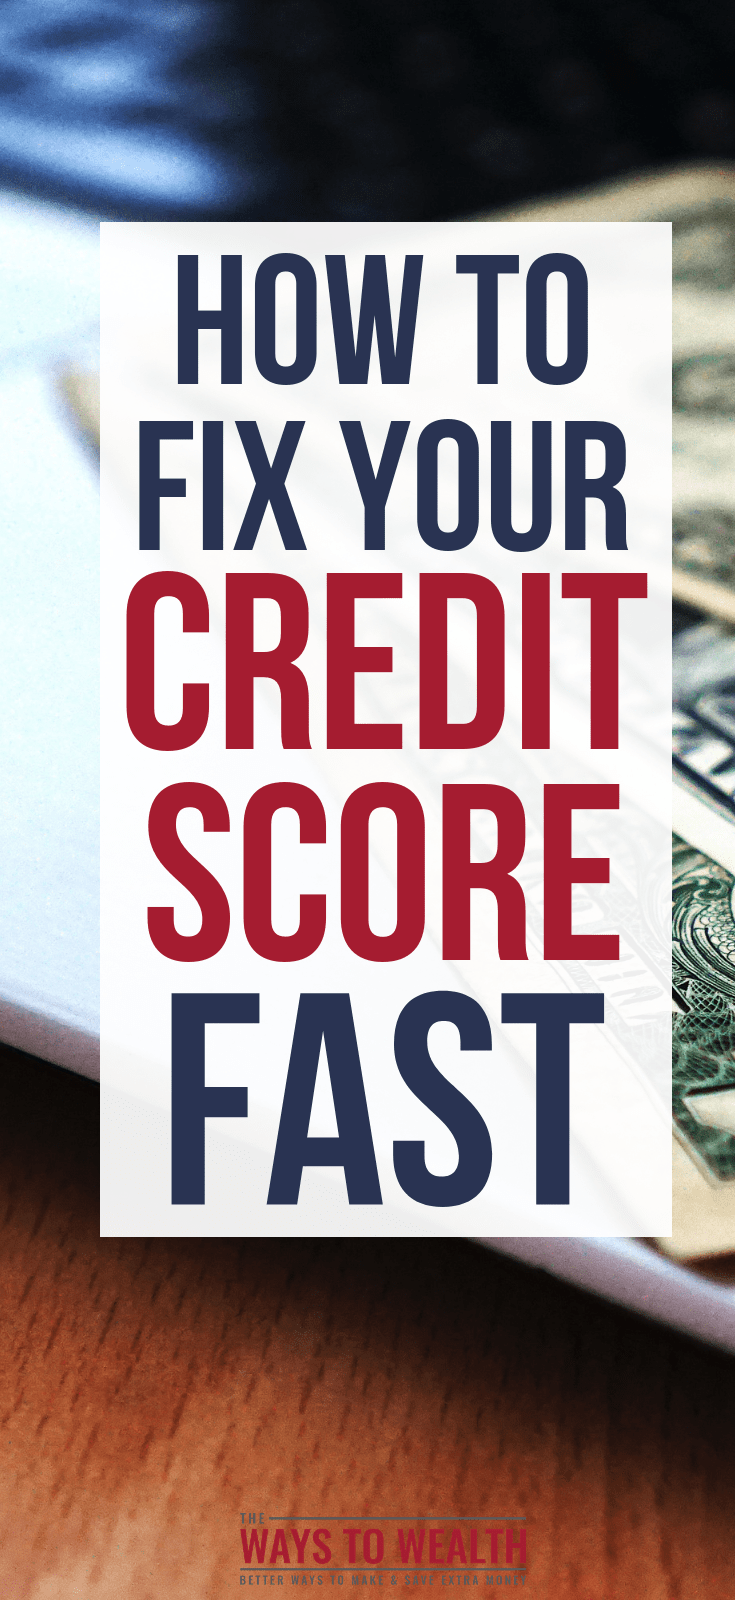 How To Repair Your Credit Yourself: 5 Quick TipsDiscover simple and quick tips on how to repair your credit quickly. Follow this advice to improve improve your credit yourself, fast.#debtfree #credit #creditscore #debt